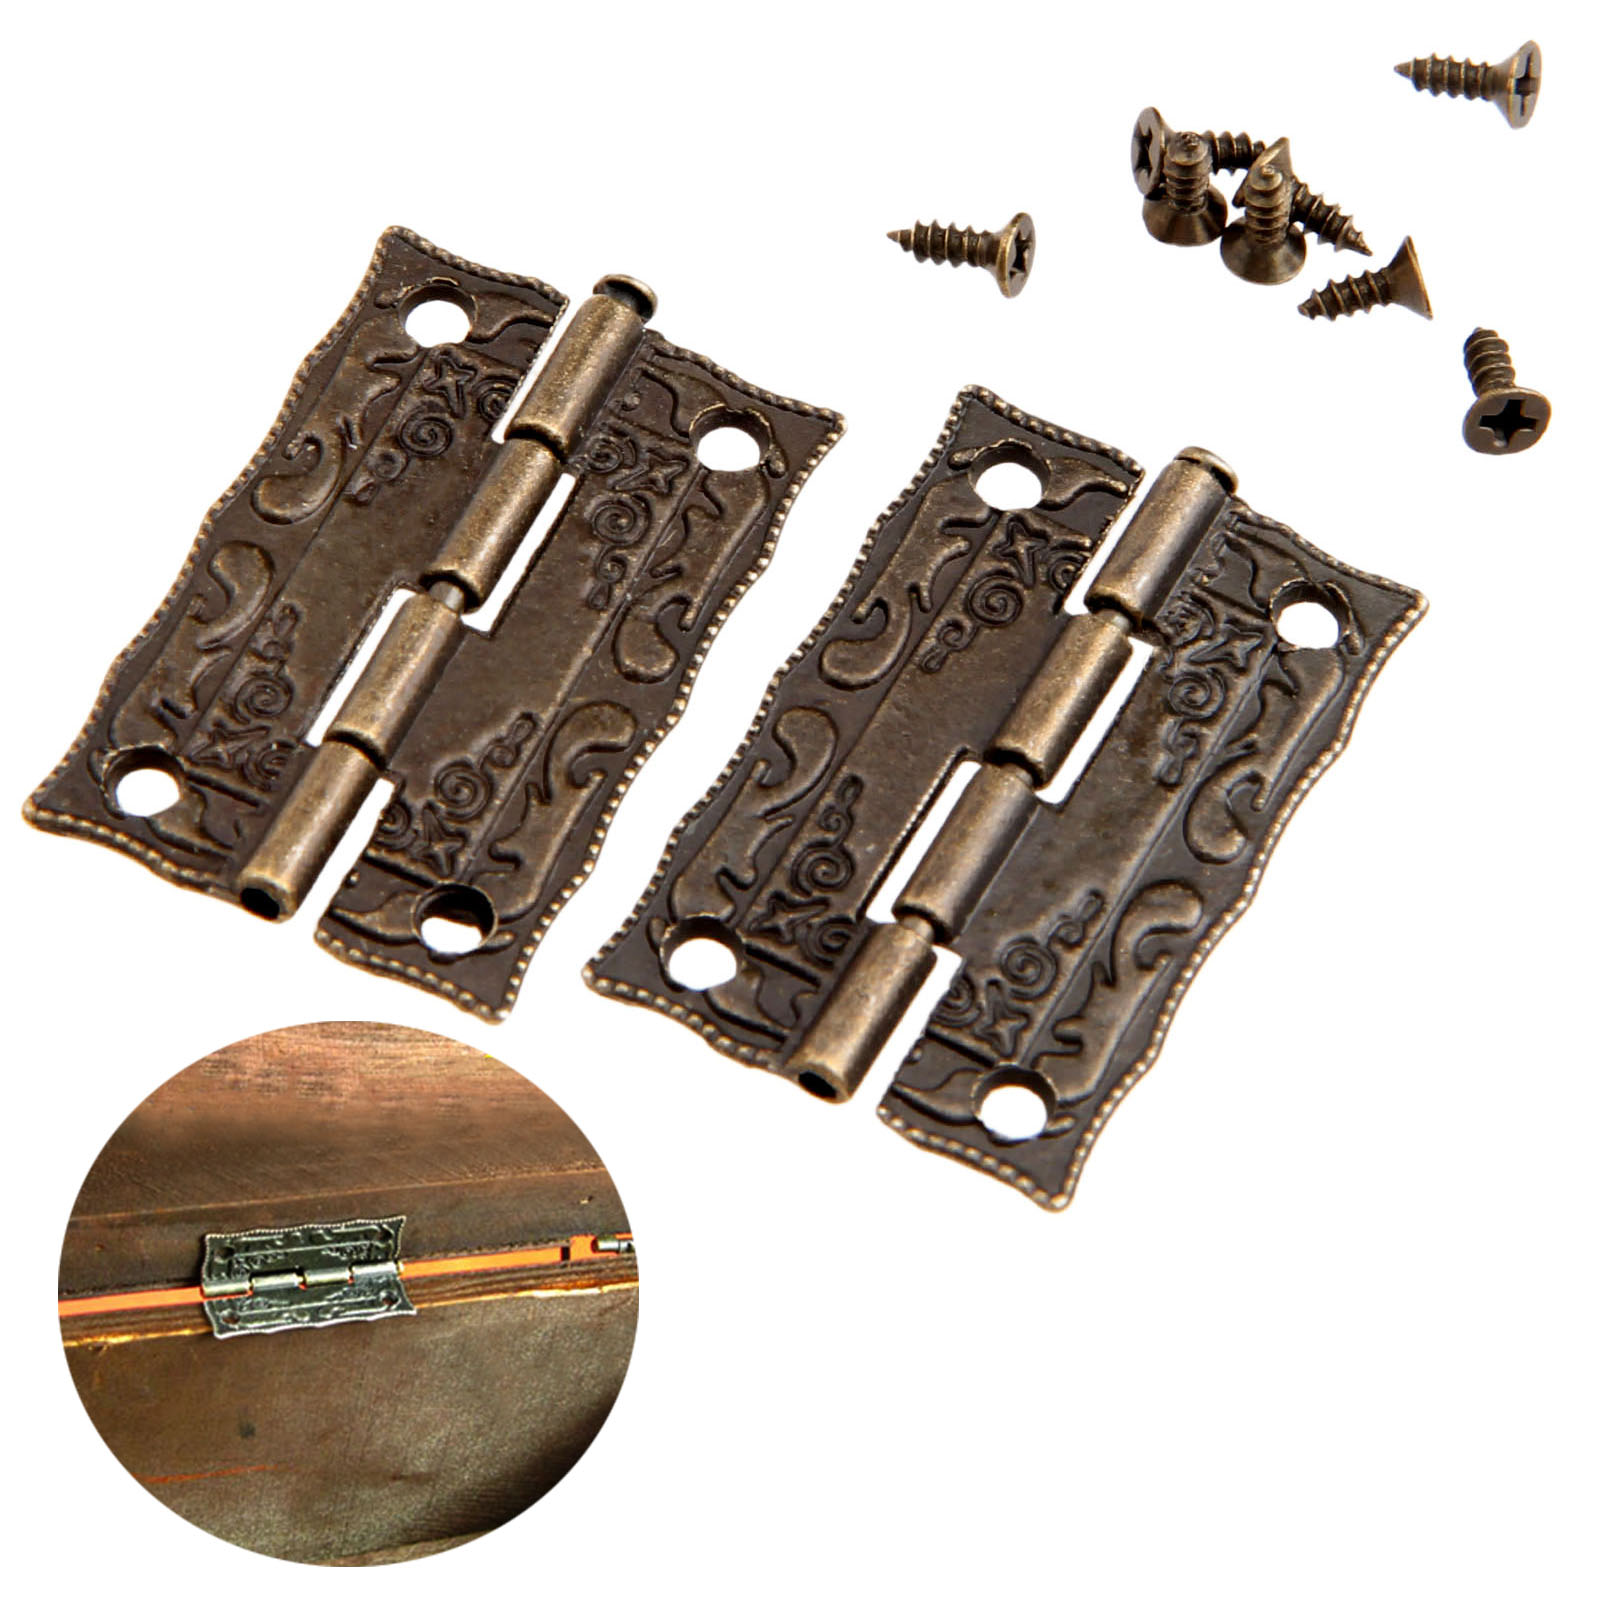 2Pcs 36x23mm Antique Bronze Cabinet Hinges Furniture Accessories Door Hinges Drawer Jewellery Box Hinges For Furniture Hardware(China (Mainland))